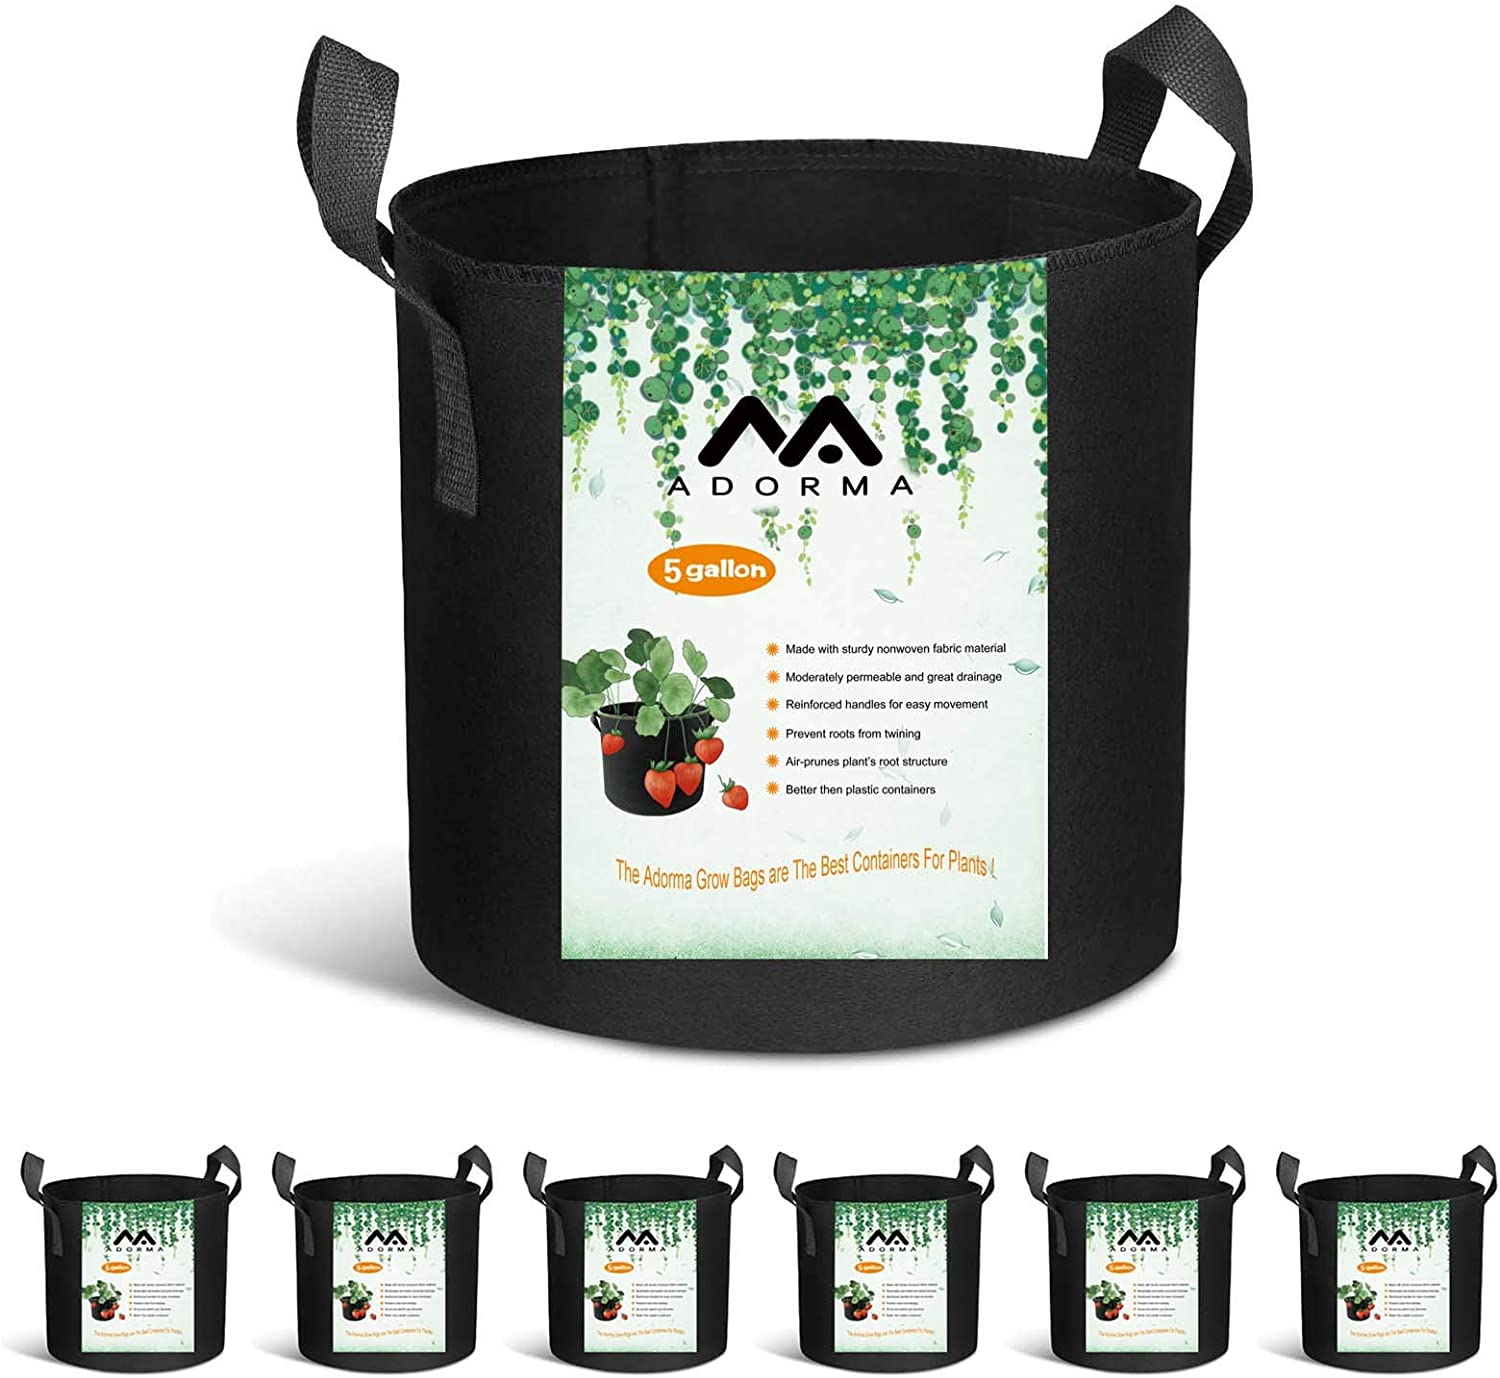 Adorma 6-Pack 5 Gallon Grow Bags, Heavy Duty Fabric Pots with Handles,300G Thickened Nonwoven Pots for Plants